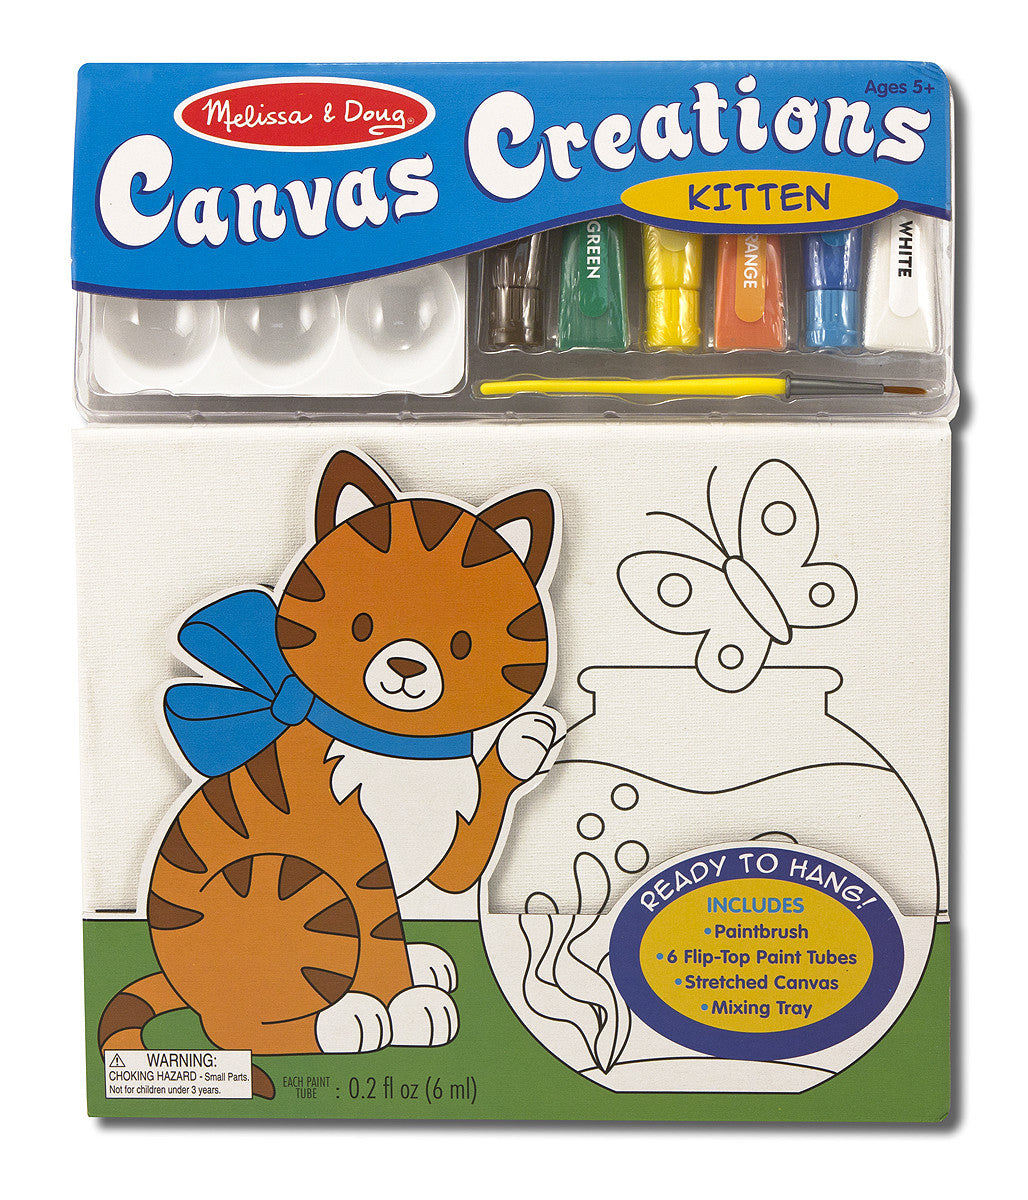 Melissa & Doug Canvas Creations - Kitten